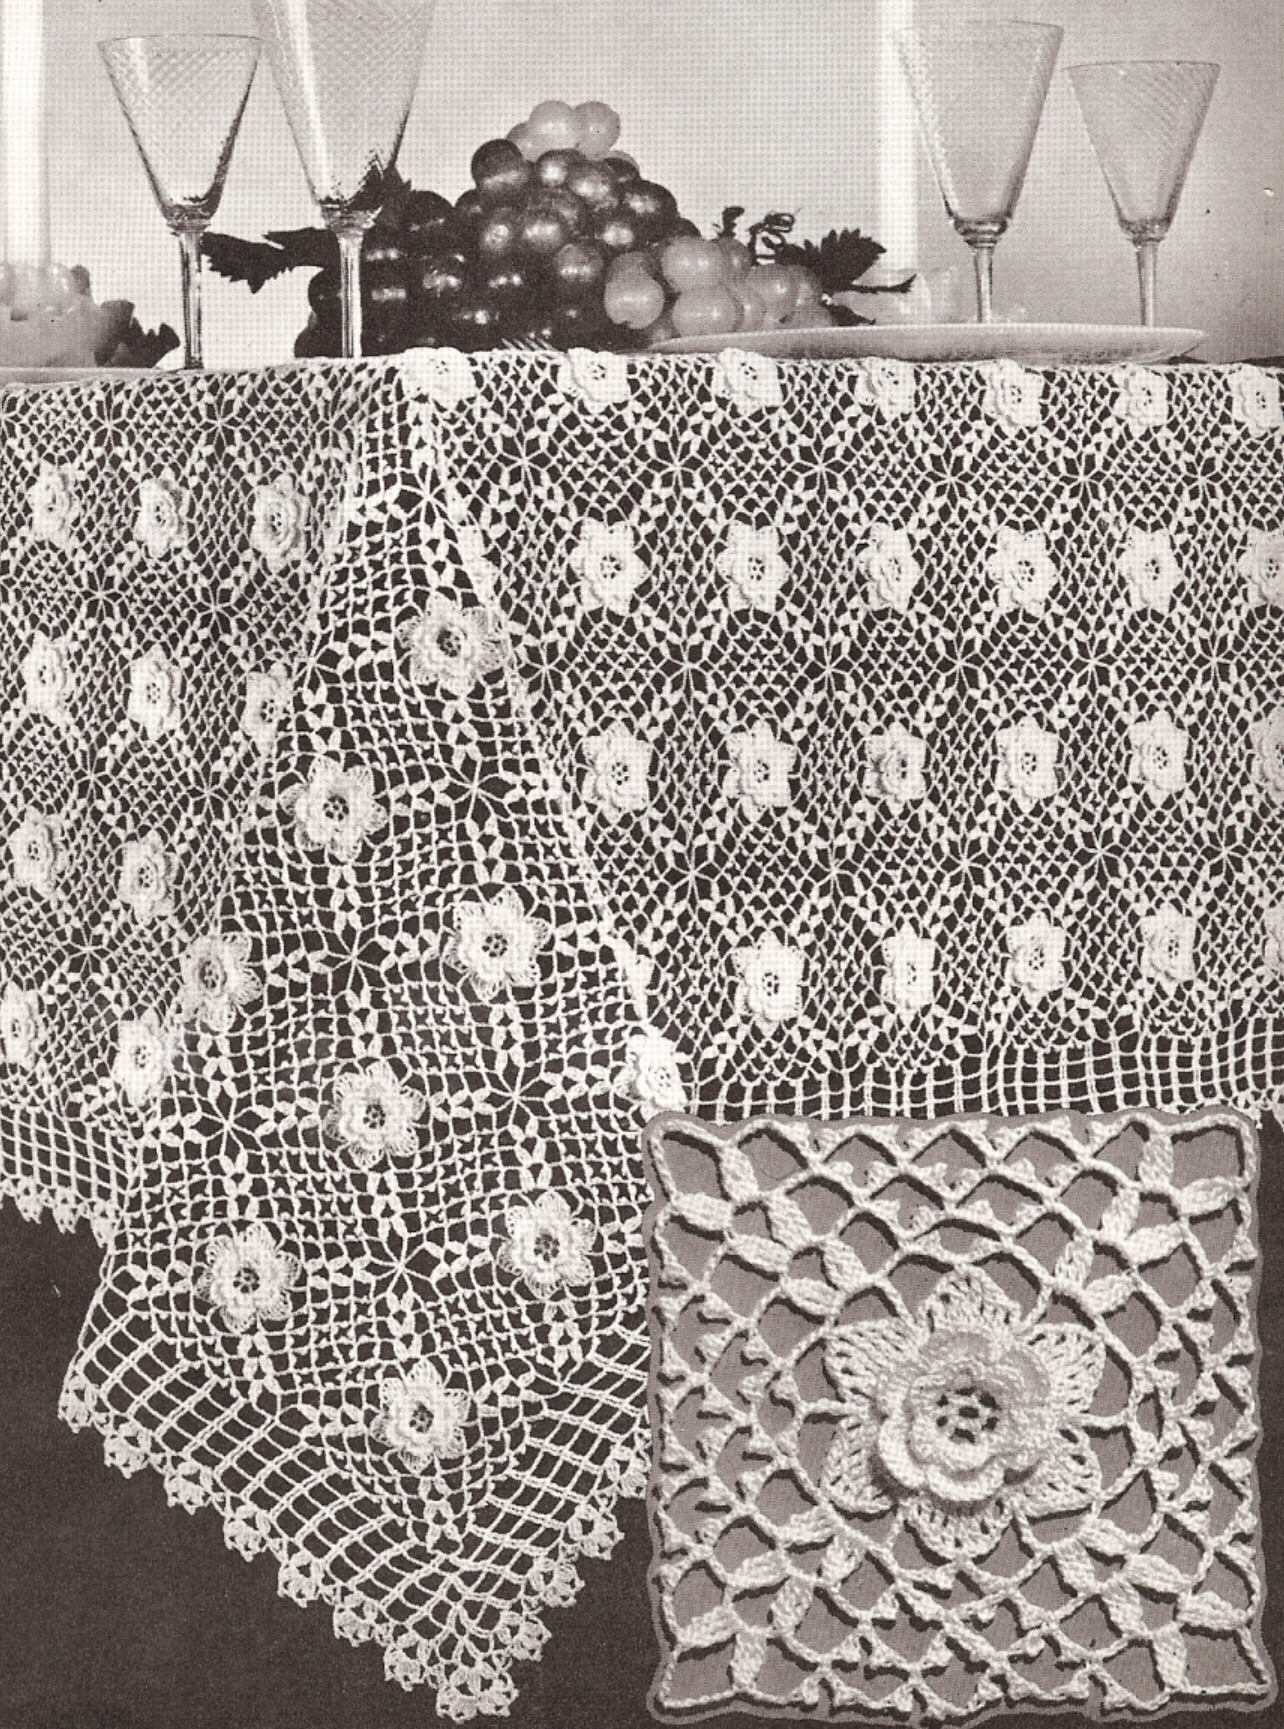 Crochet Tablecloth Pattern : Details about Vintage Irish Rose Crochet MOTIF Tablecloth Pattern